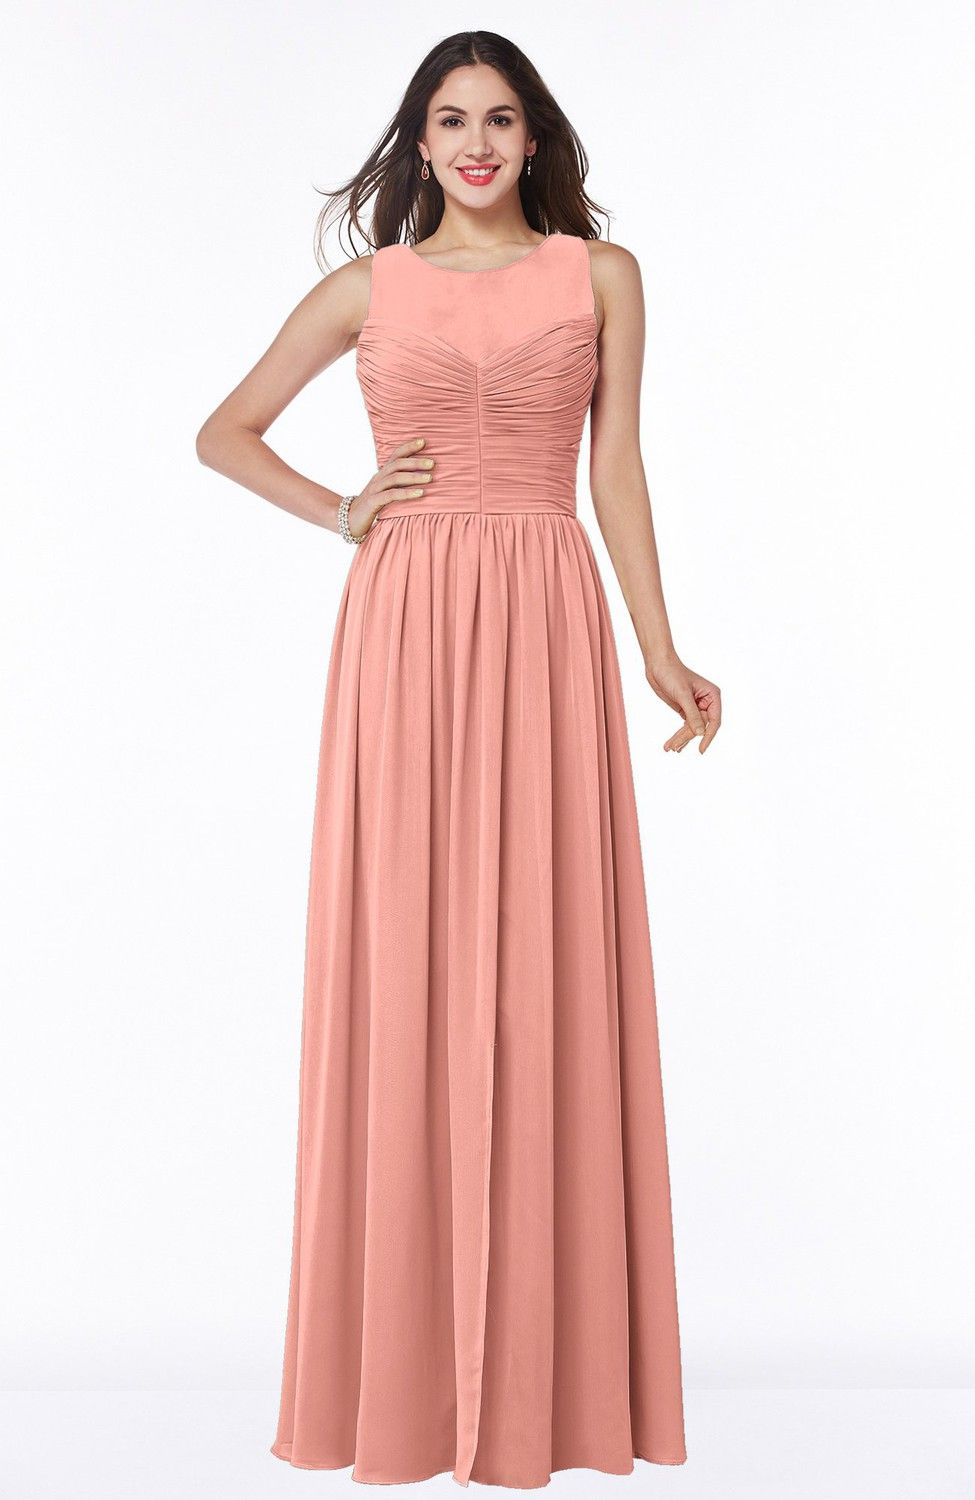 Peach Bridesmaid Dress - Elegant A-line Jewel Chiffon Floor Length ...